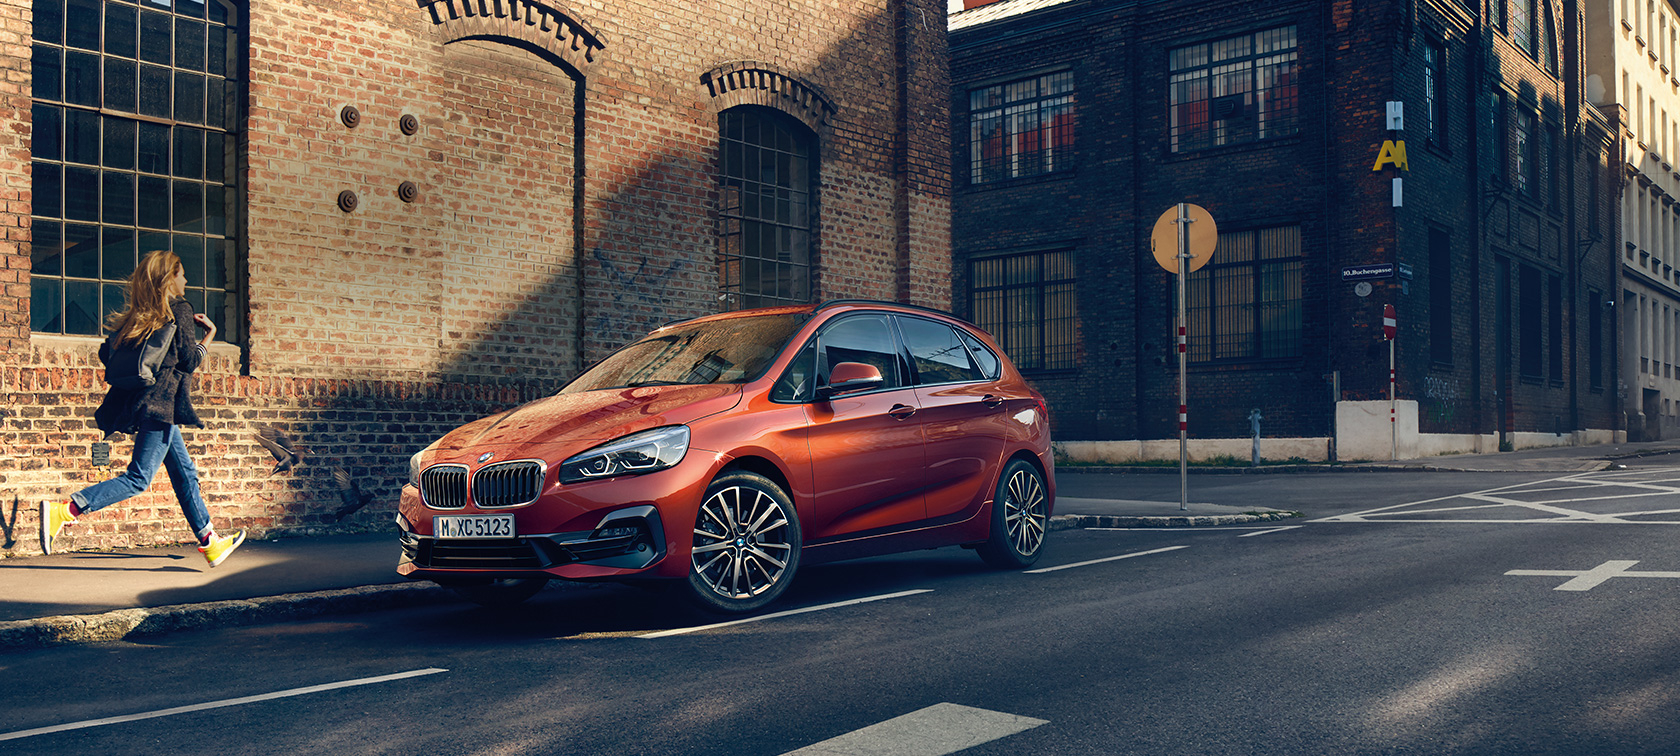 BMW Serie 2 Active Tourer F45 Facelift 2018 Sunset Orange metallizzato vista anteriore a tre quarti parcheggiata in strada